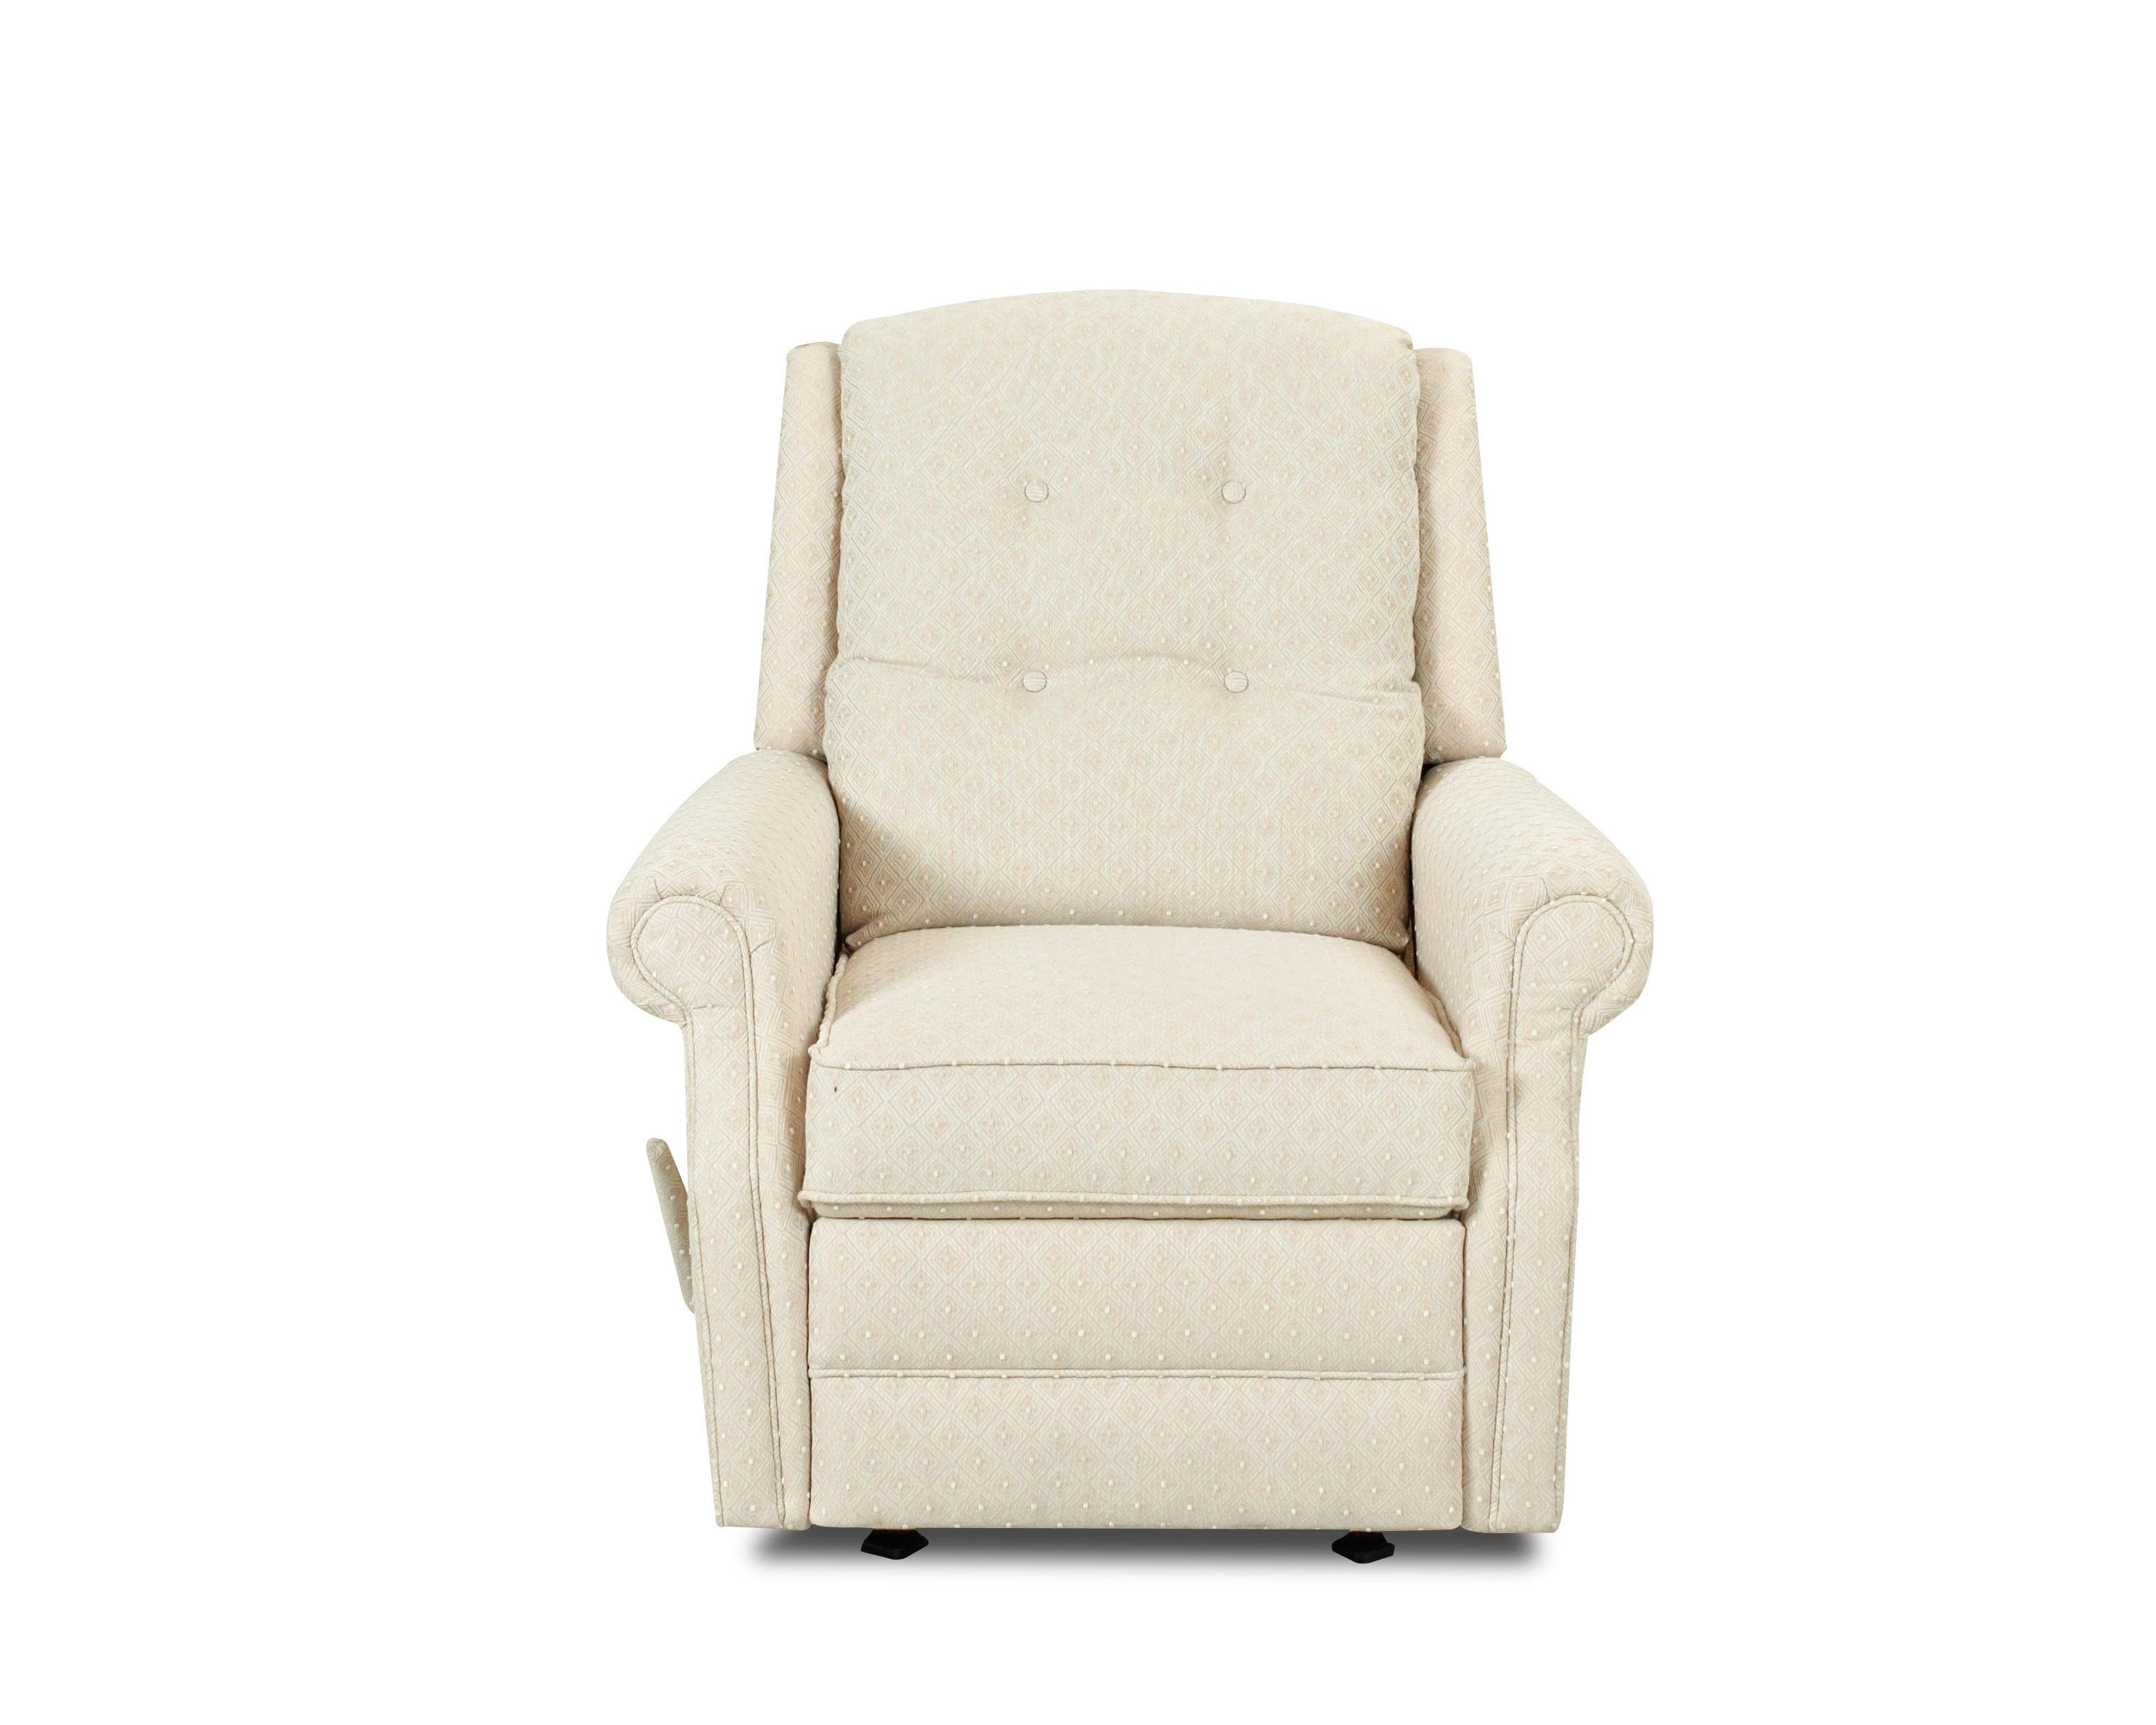 Manual Gliding Reclining Chair